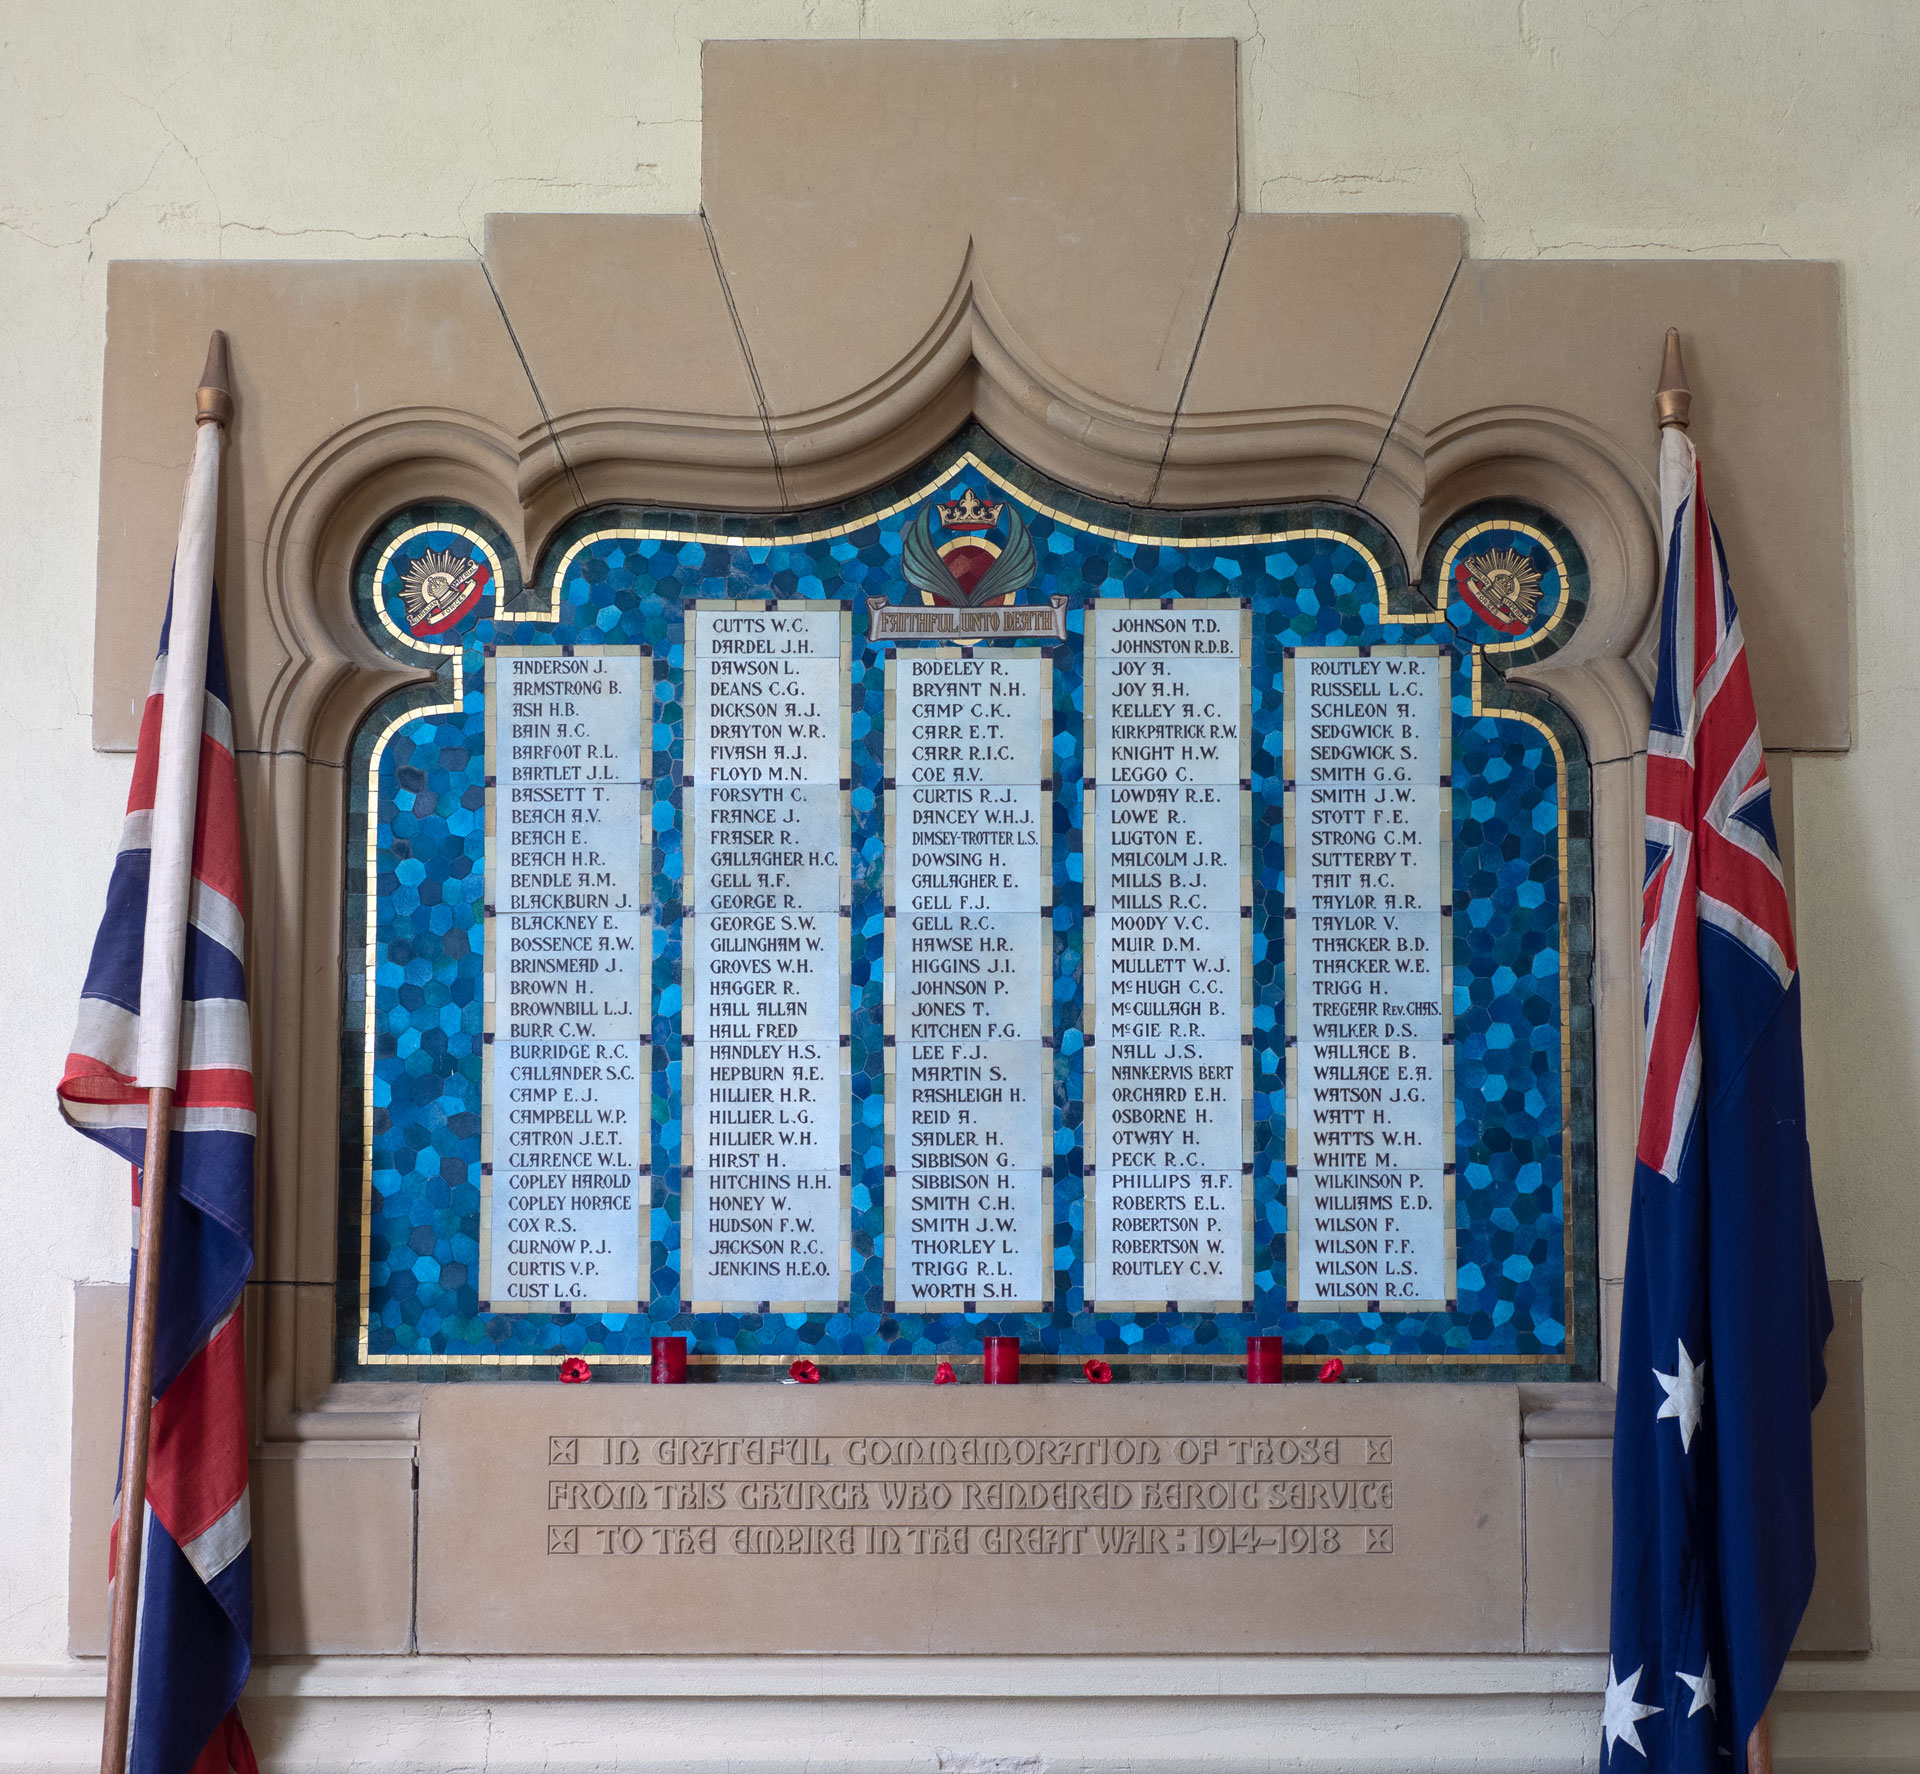 Yarra St Methodist Church Members Who Served